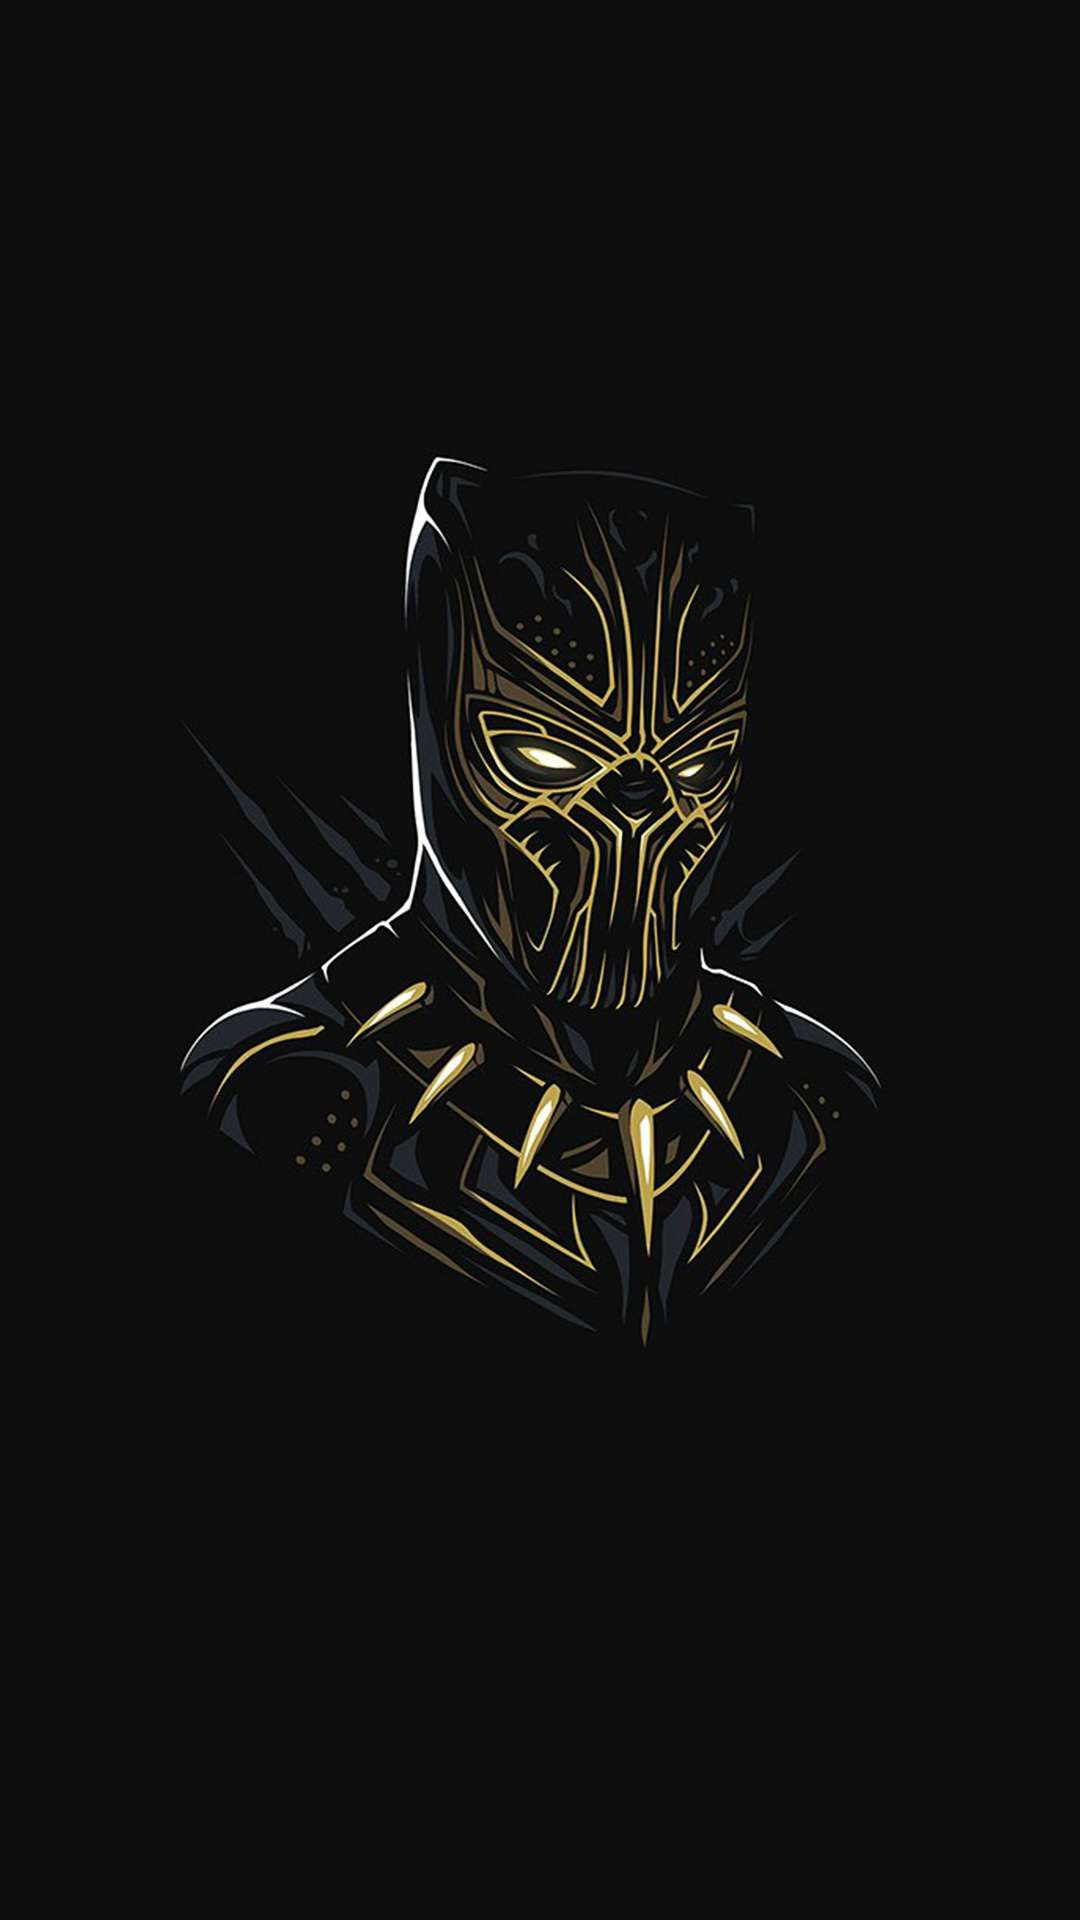 Black Panther Killmonger Minimal Iphone Wallpaper Black Panther Marvel Marvel Wallpaper Hd Black Panther Art